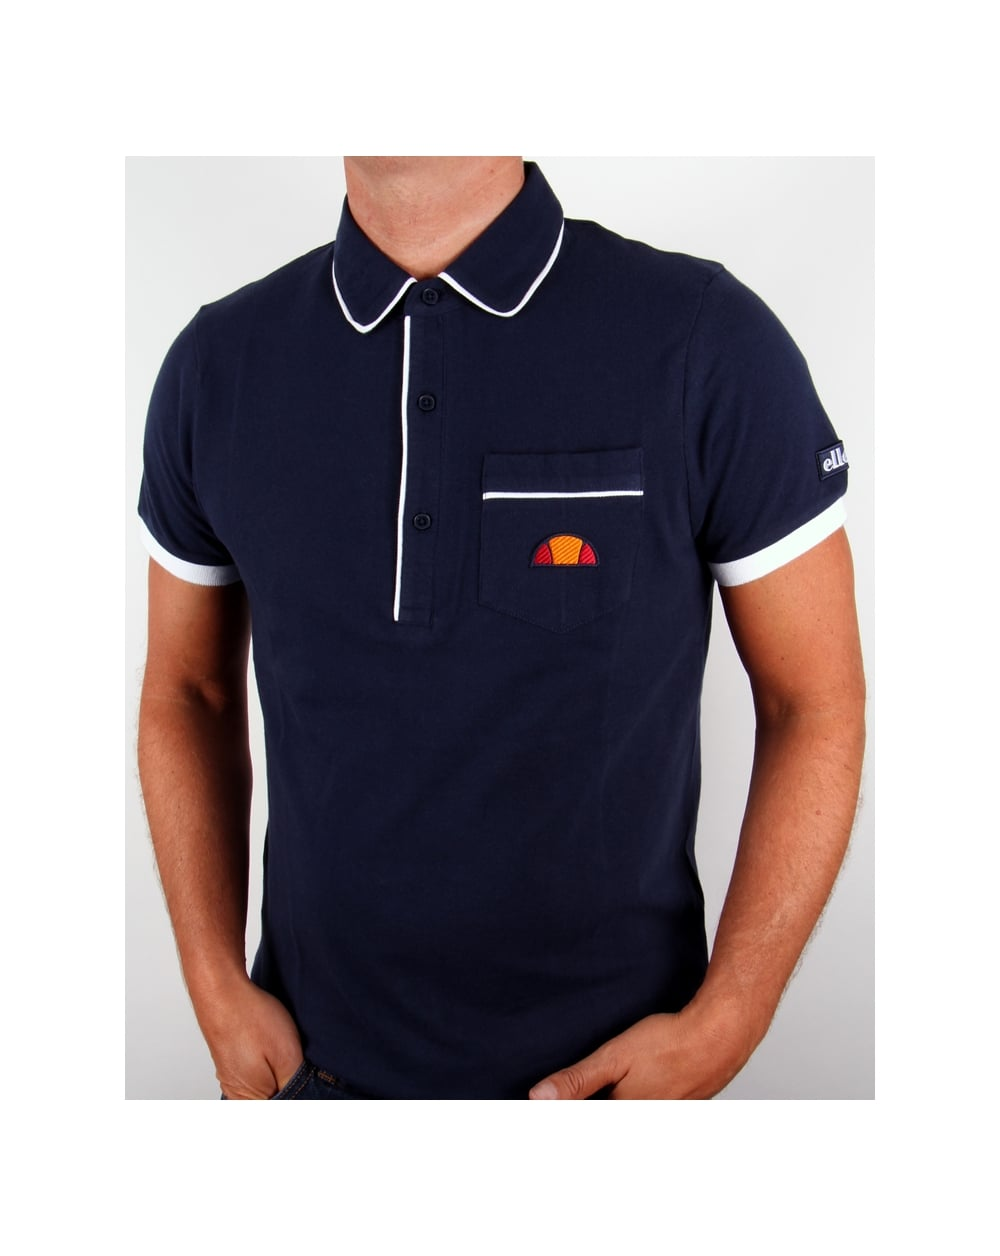 3b2519631d1 Ellesse Parma Polo Shirt Navy - Polo Shirts from 80s Casual Classics UK